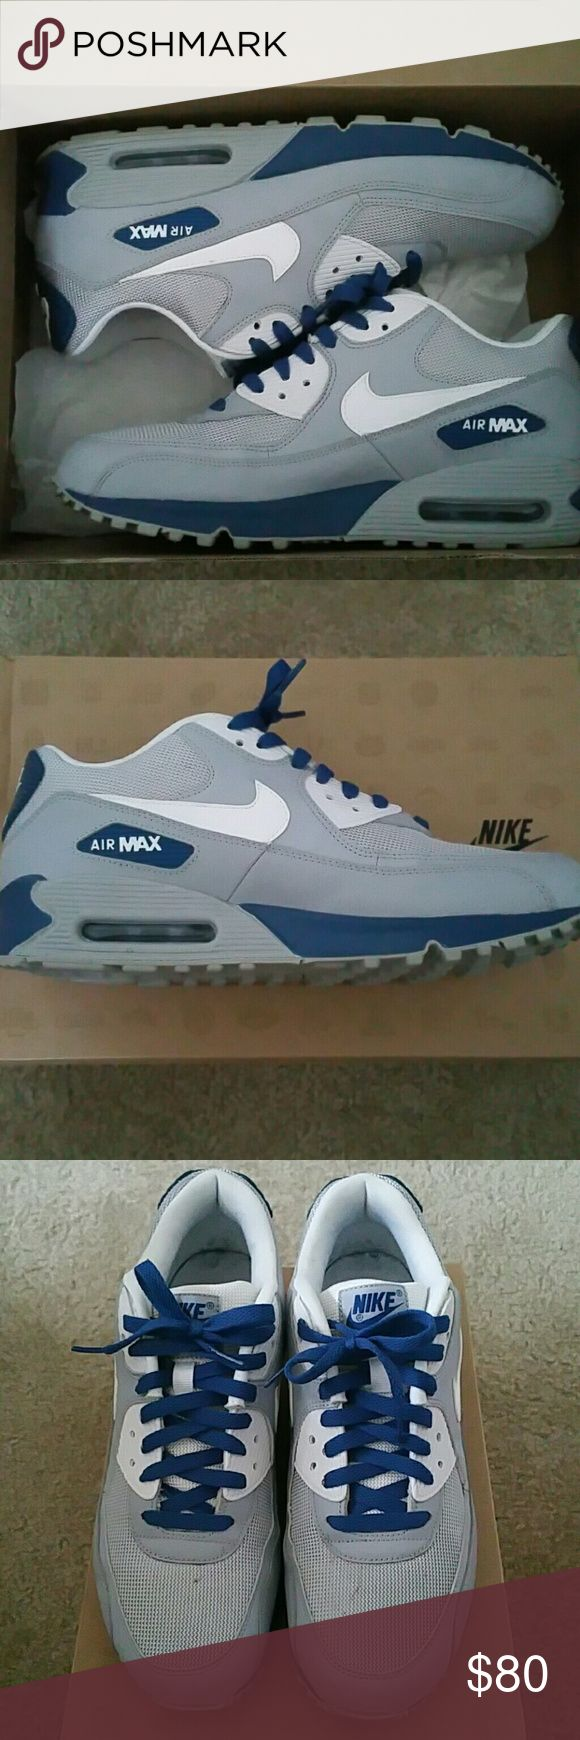 Nike Air Max 90 Essential Nike Air Max 90 wolf grey/white/dark royal blue 9/10 condition. Will listen to offers Nike Shoes Sneakers